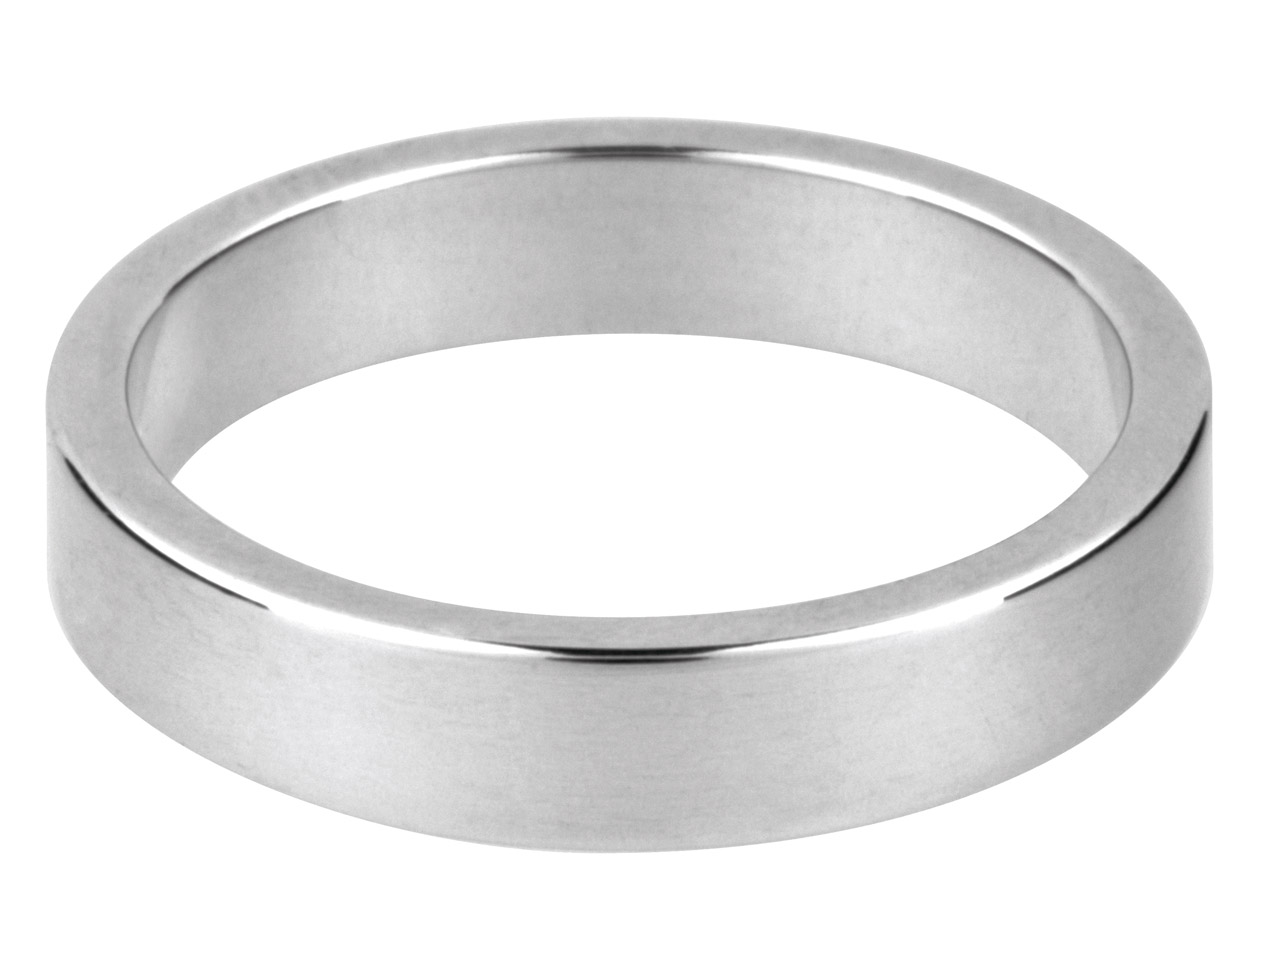 Palladium 500 Flat Wedding Ring    4.0mm X 3.8gms Medium Weight       Hallmarked Wall Thickness 1.16mm